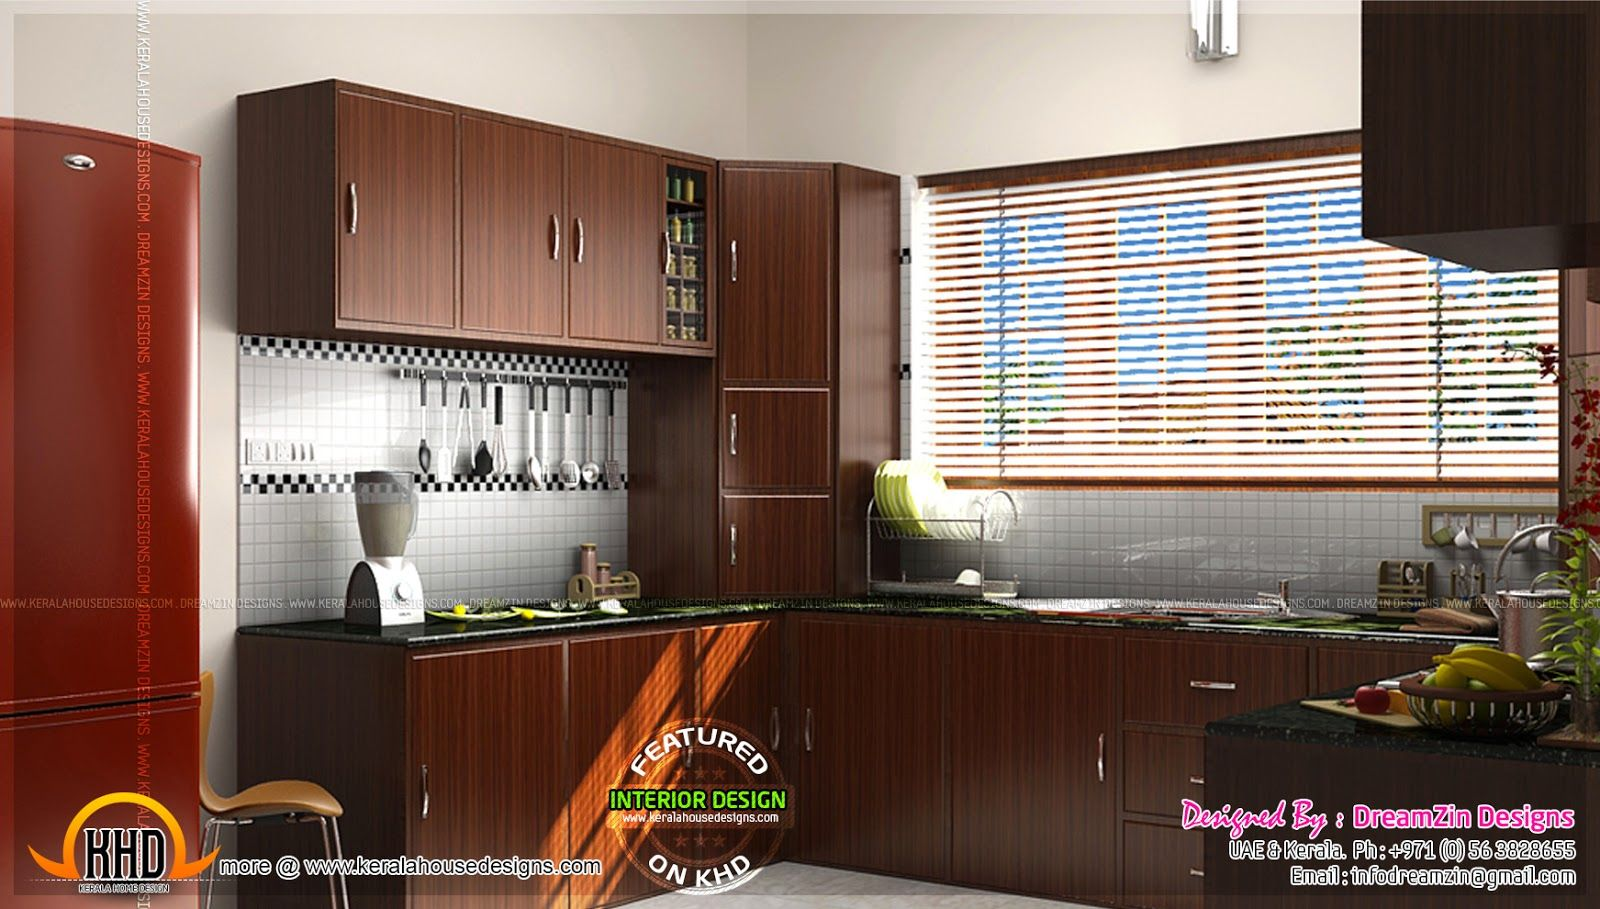 kerala style kitchen design picture. kerala kitchen interior design modular  designs contact house